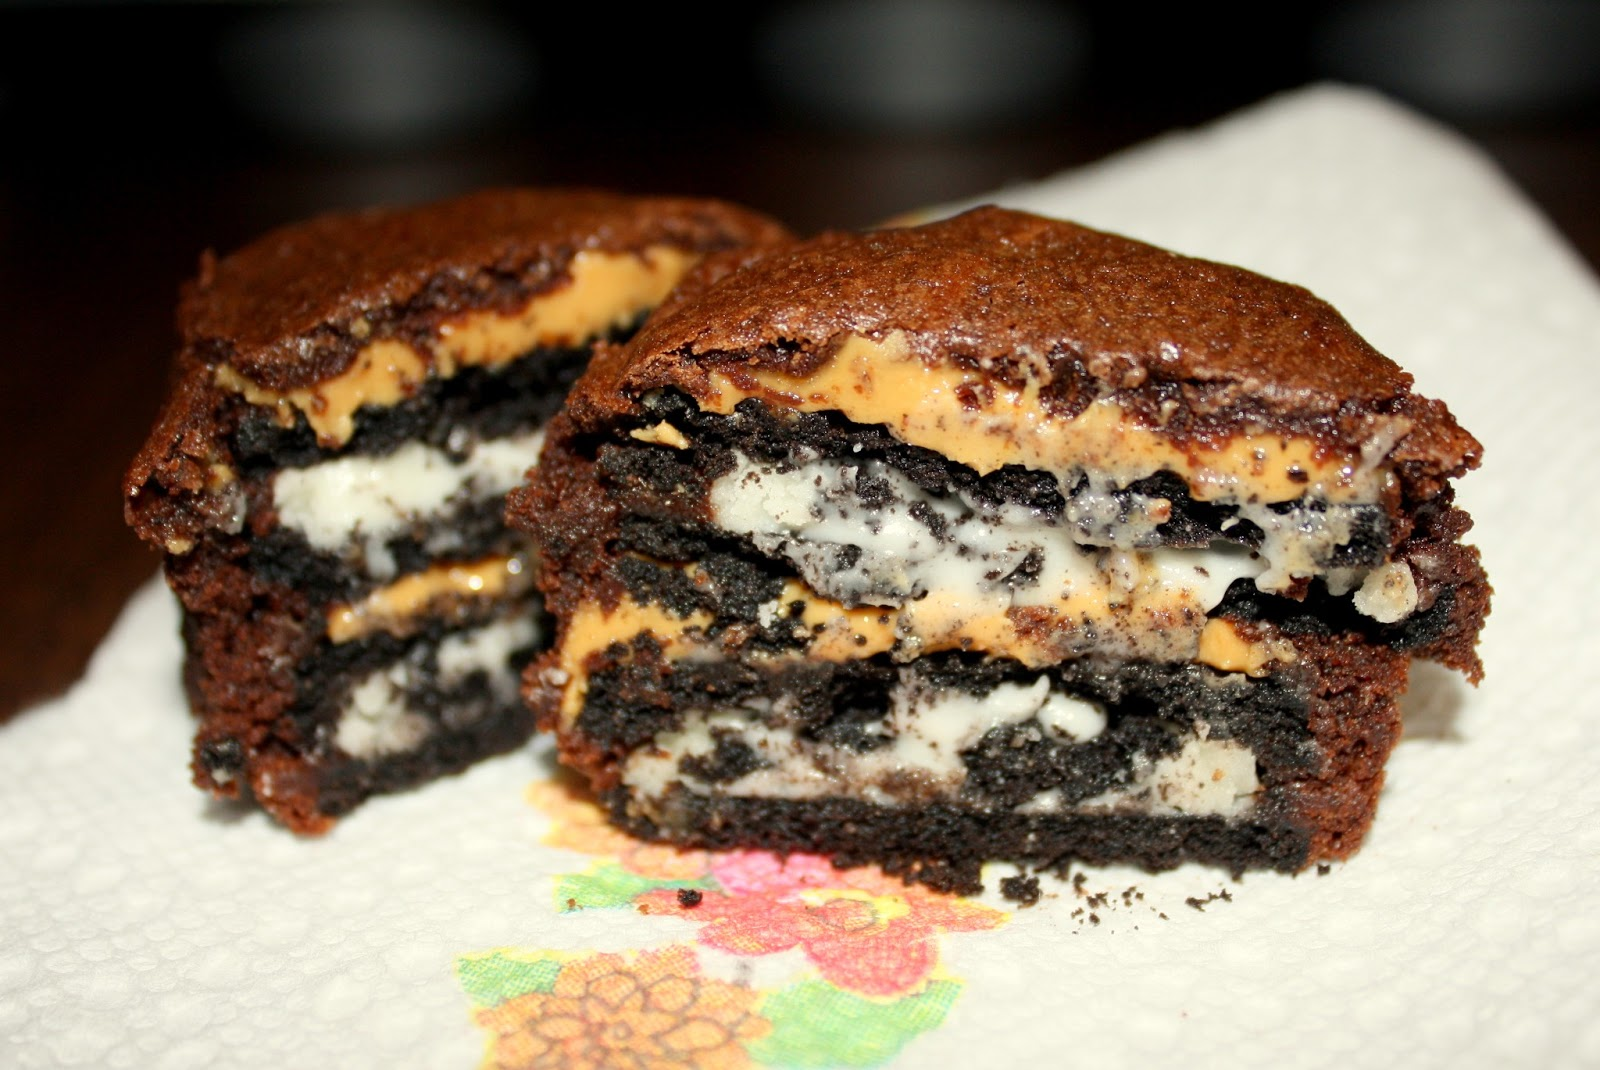 Sew Much To Say: Saturday's Sweets: Oreo Peanut Butter Brownie Cakes